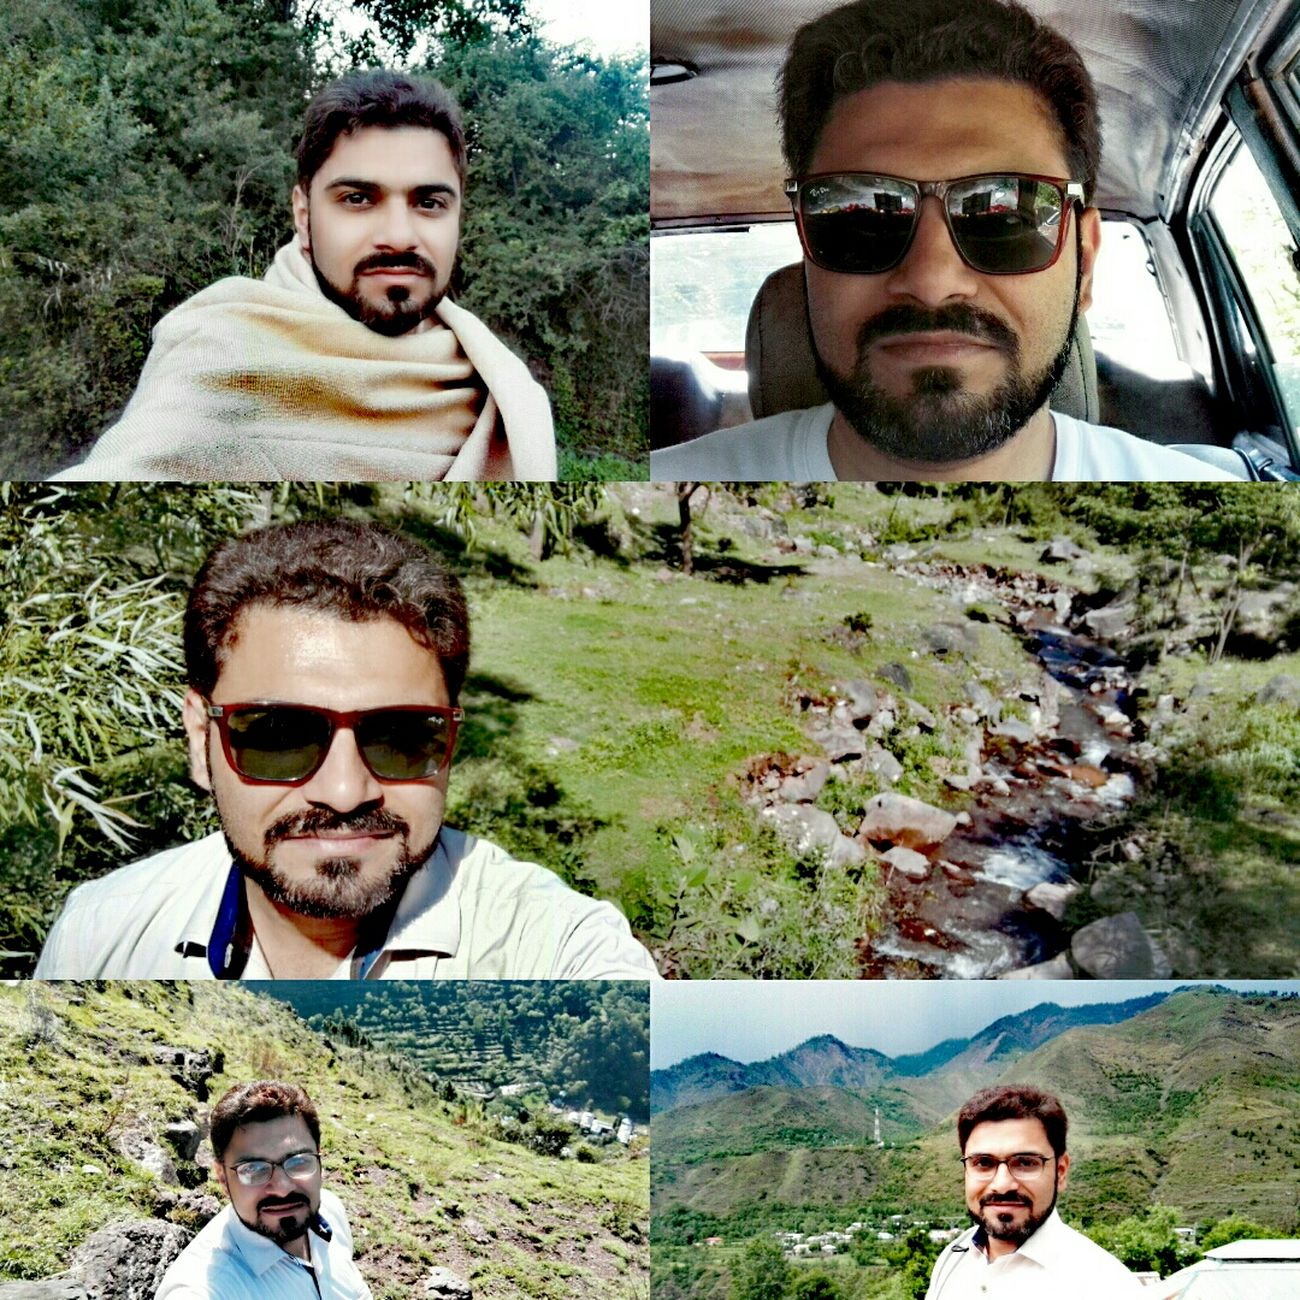 Sunglasses Looking At Camera Portrait Eyeglasses  Young Adult Front View Young Men Real People Outdoors Togetherness Beard Adult Multiple Image Water Nature Cloud - Sky Mountain Dramatic Sky Sky And Trees Close-up Beauty In Nature Awesome_shots EyeEm Best Shots Travel Destinations Sexyman